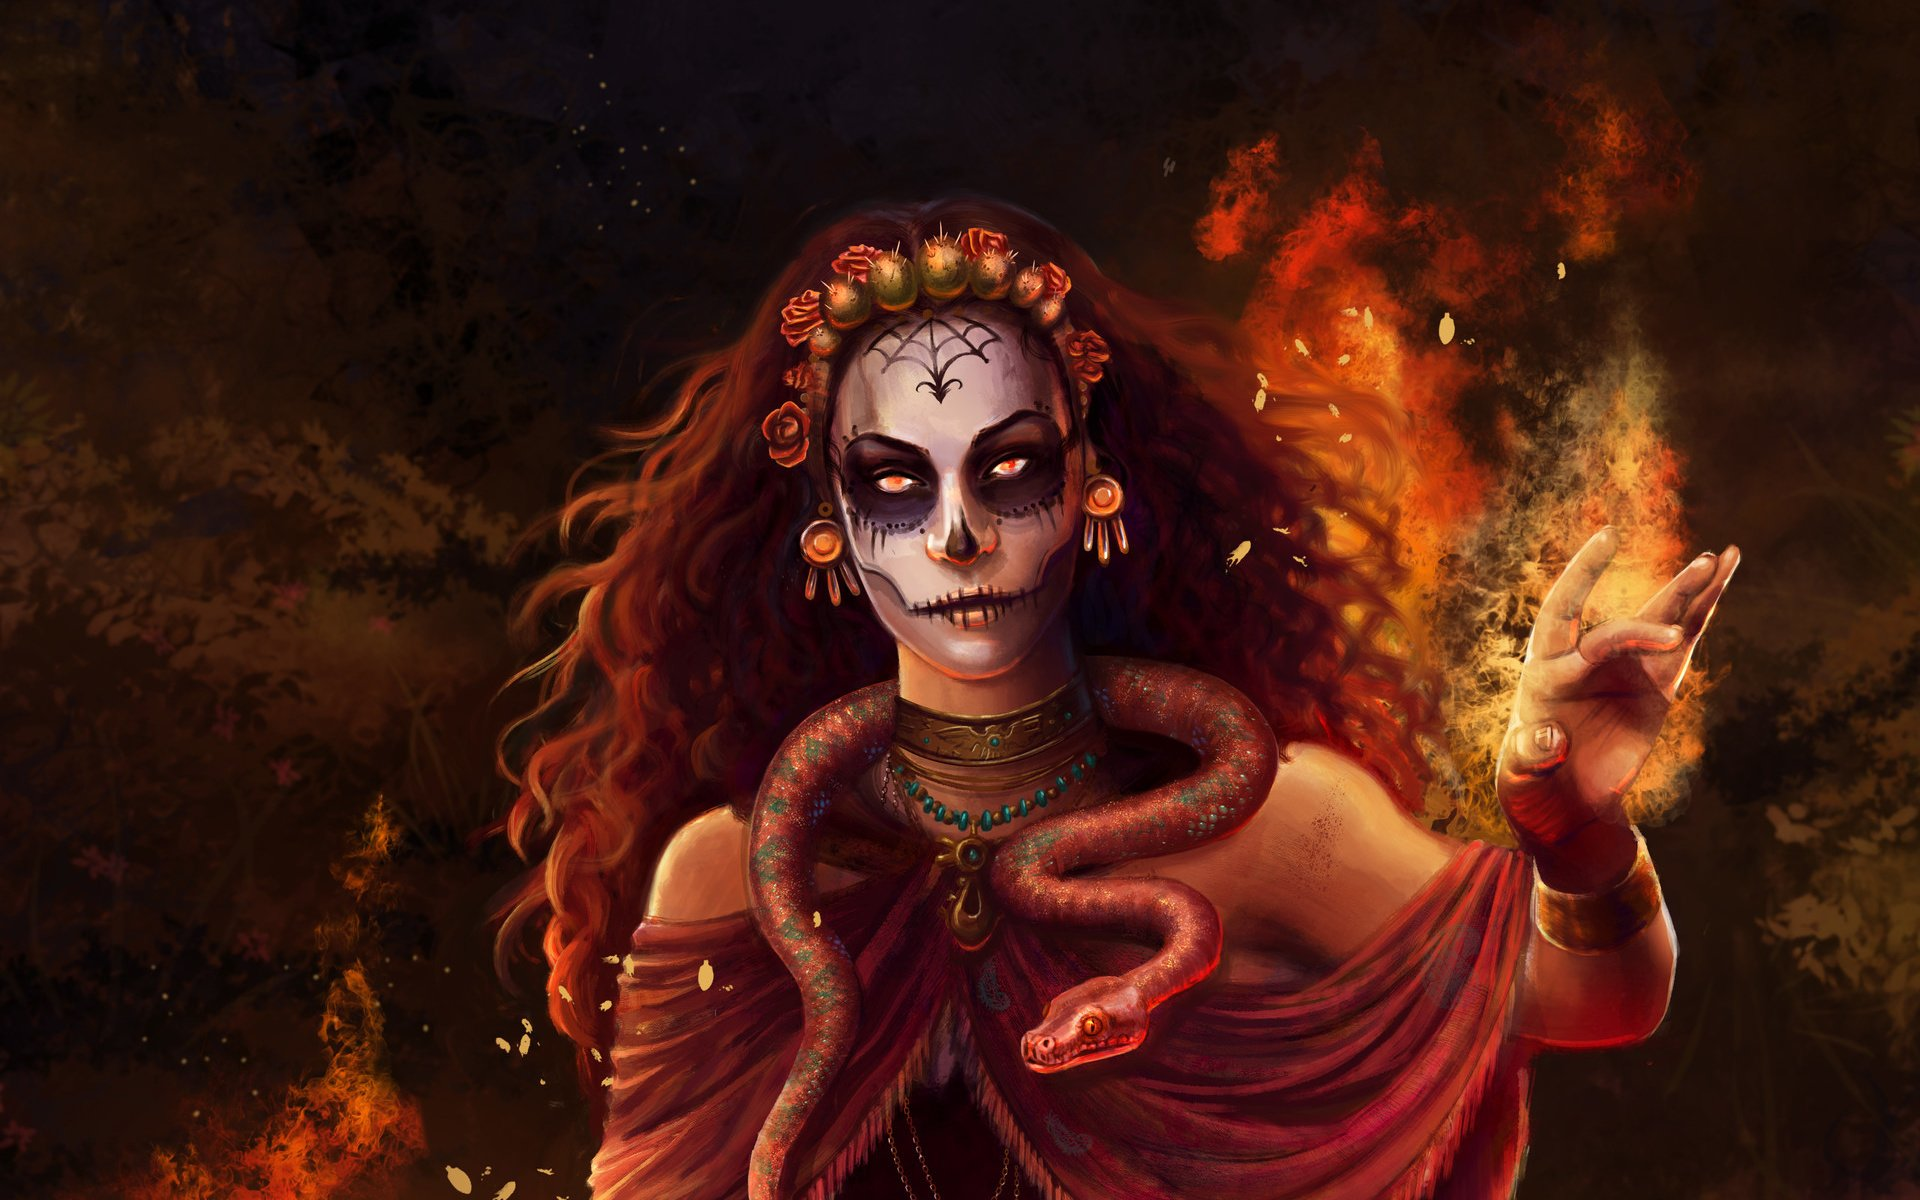 Witch full hd wallpaper and background image 1920x1200 id856076 fantasy witch sugar skull woman girl magic snake wallpaper voltagebd Choice Image